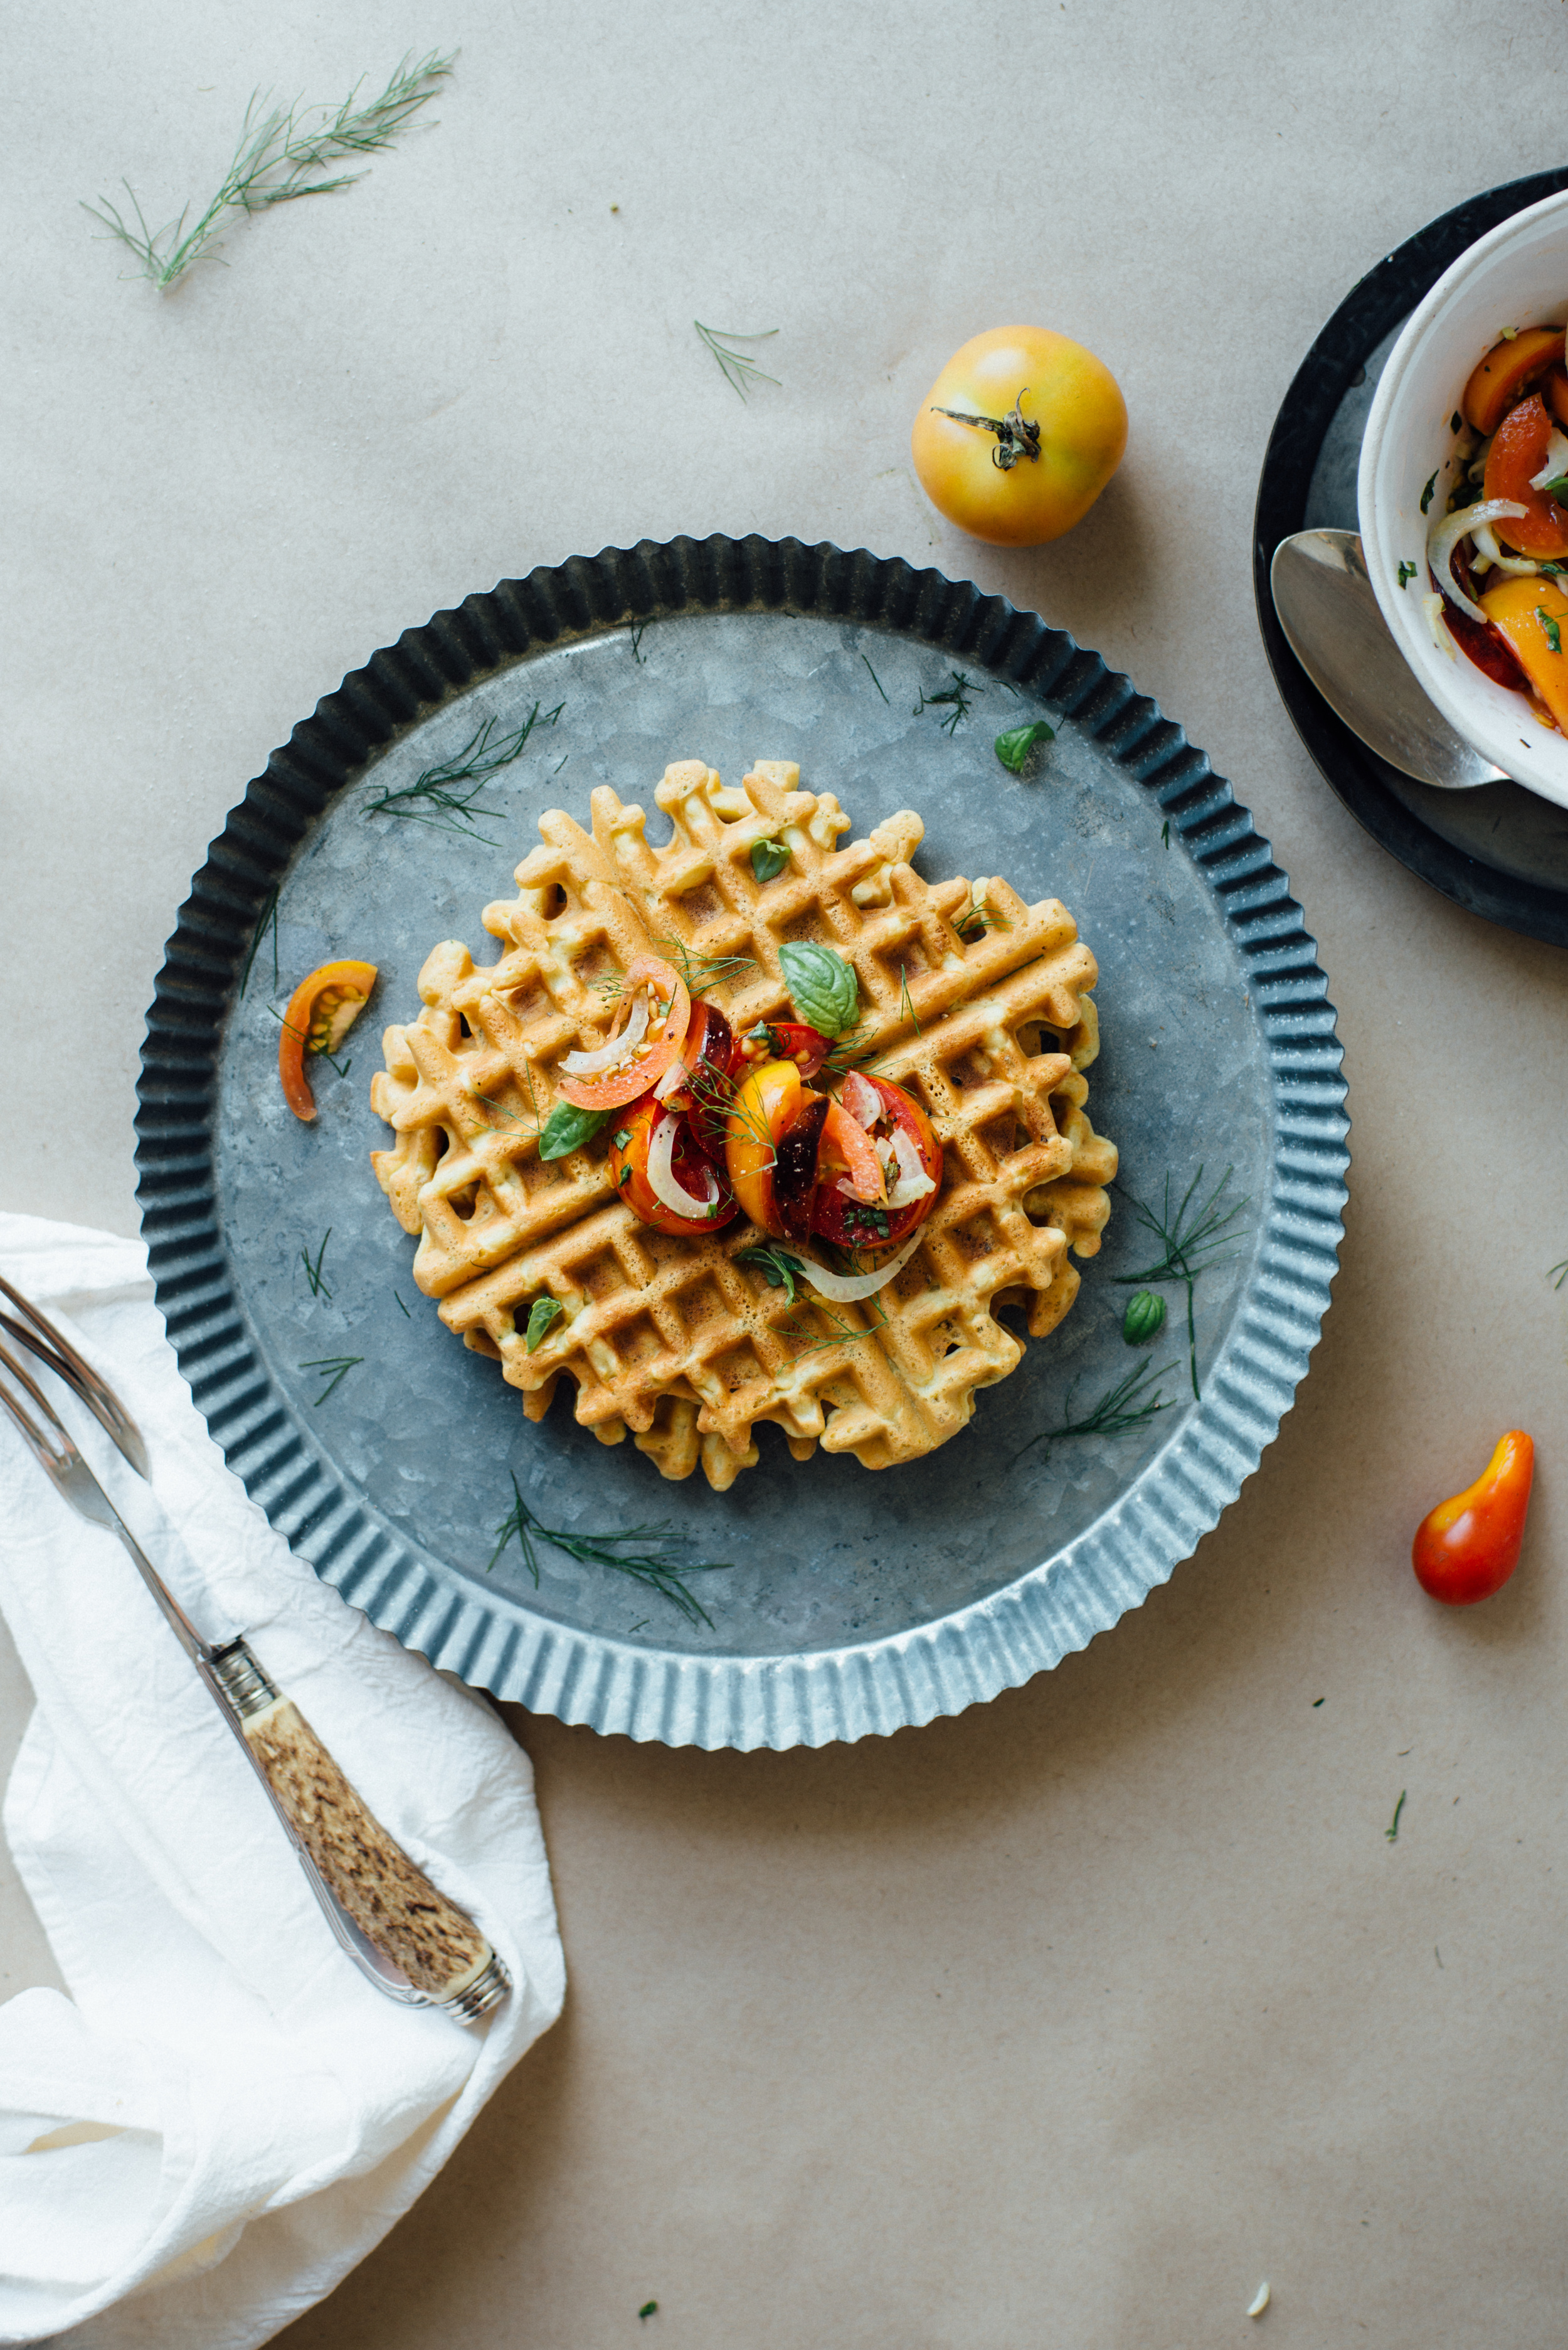 zucchini-basil chickpea waffles W/ tomato + shaved fennel salad | dolly and oatmeal